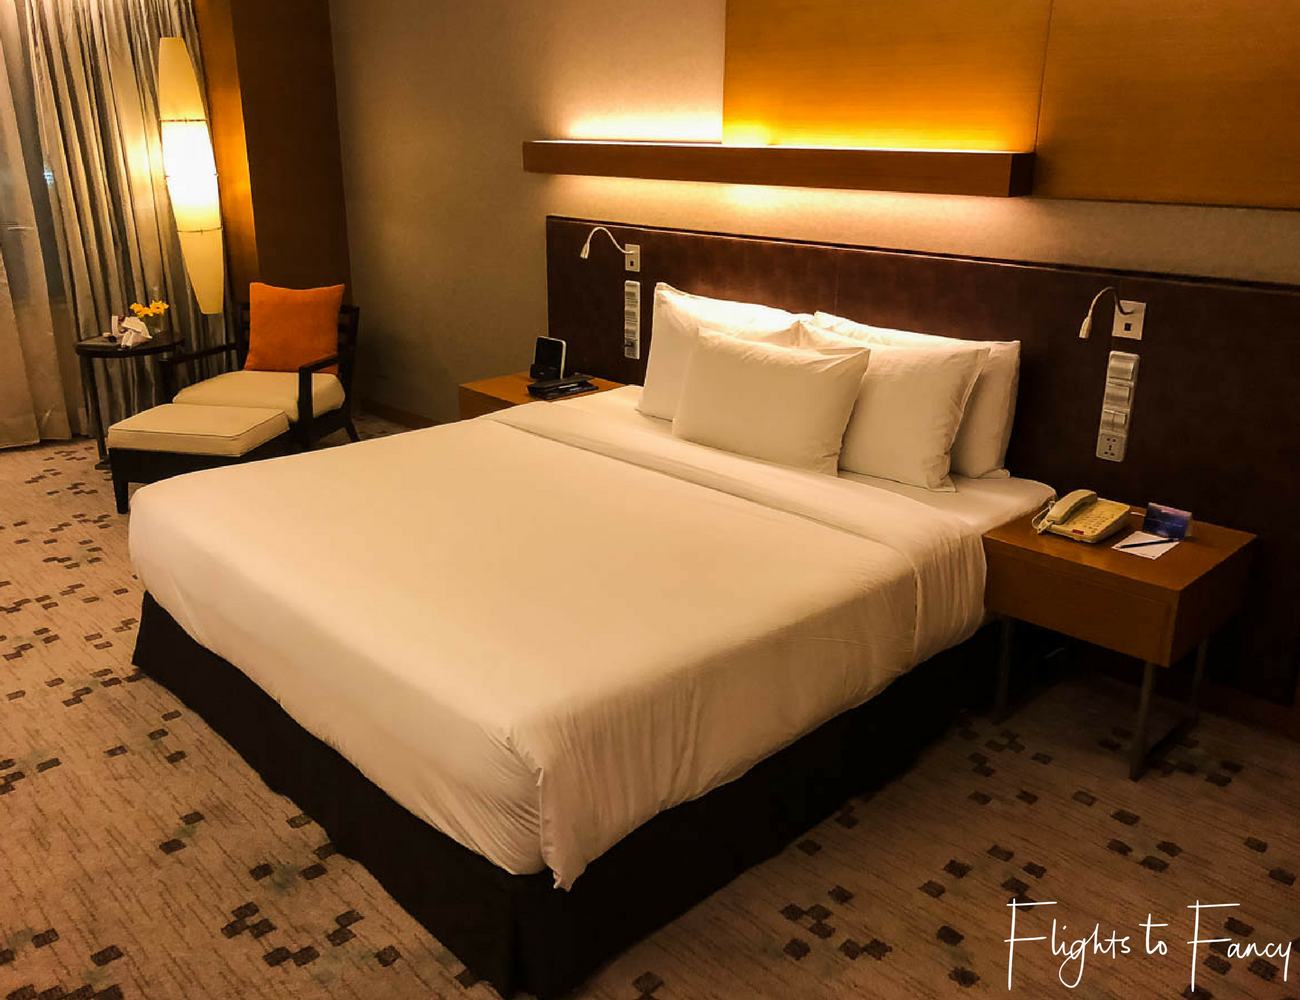 Flights To Fancy @ Radisson Blu Cebu City. The answer to where to stay in Cebu